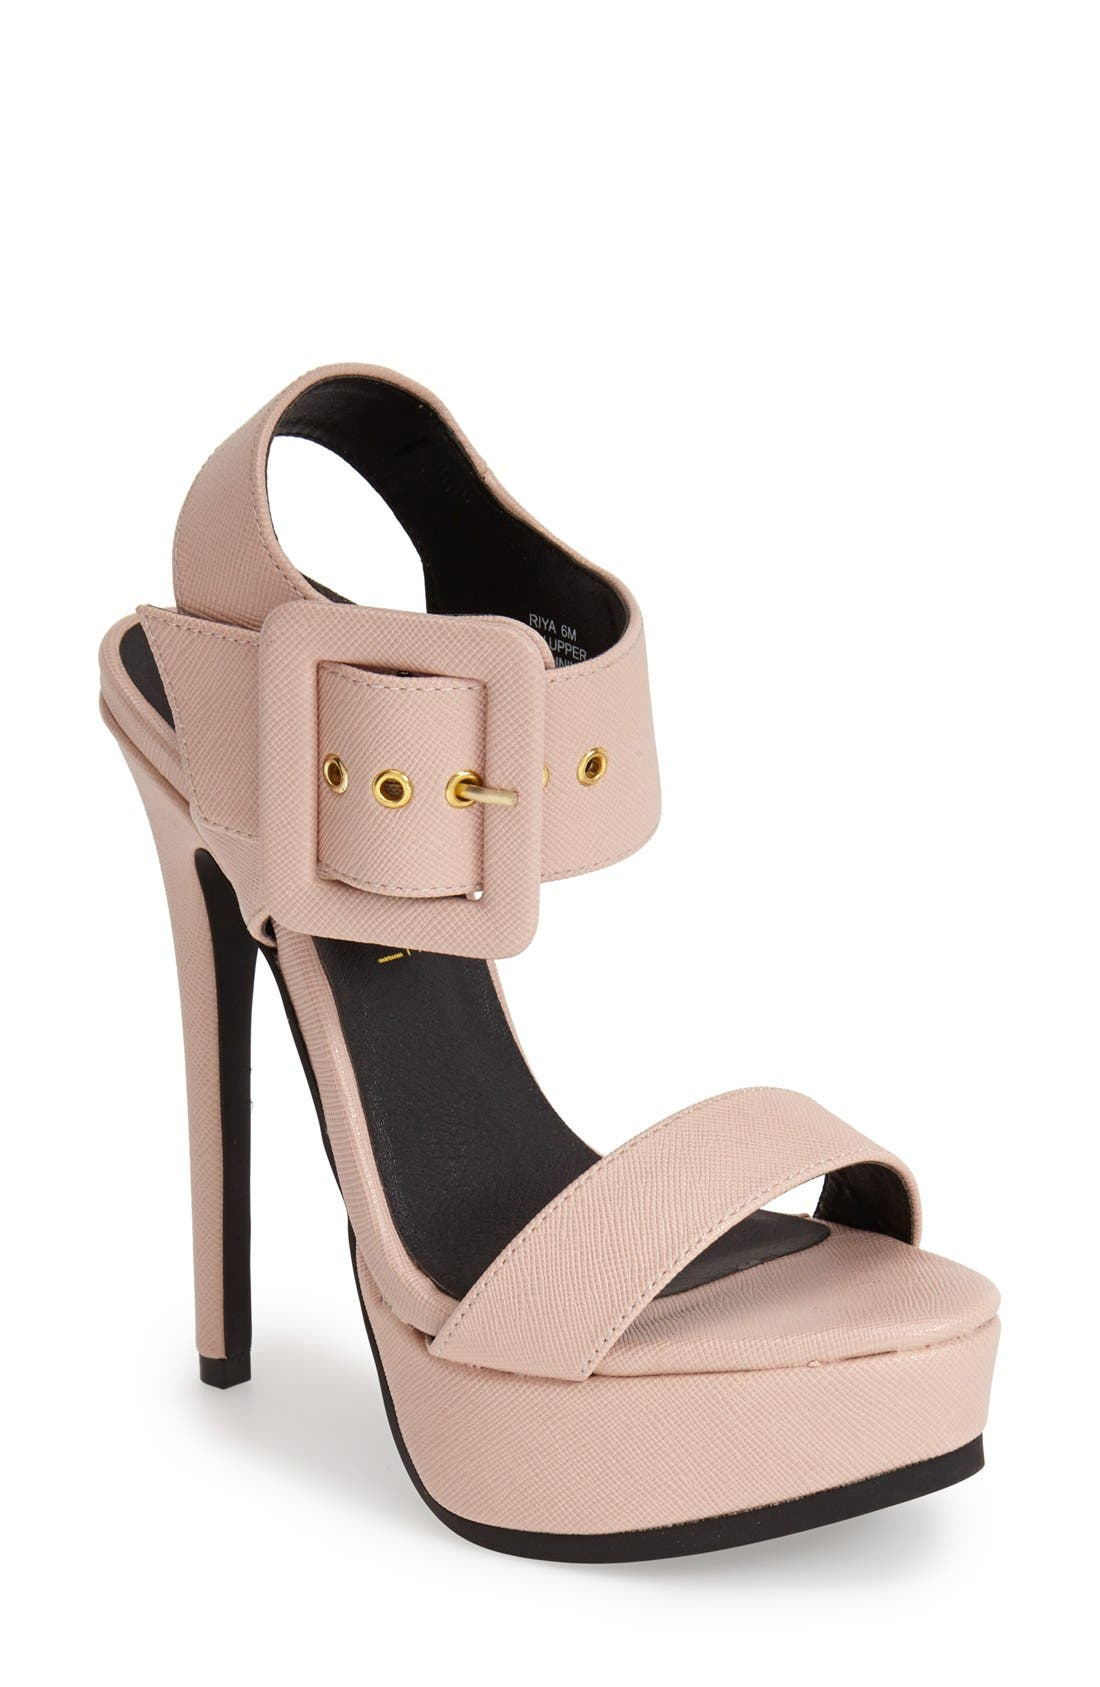 Alternate Image 1 Selected - KENDALL + KYLIE Madden Girl 'Riya' Platform Sandal (Women)